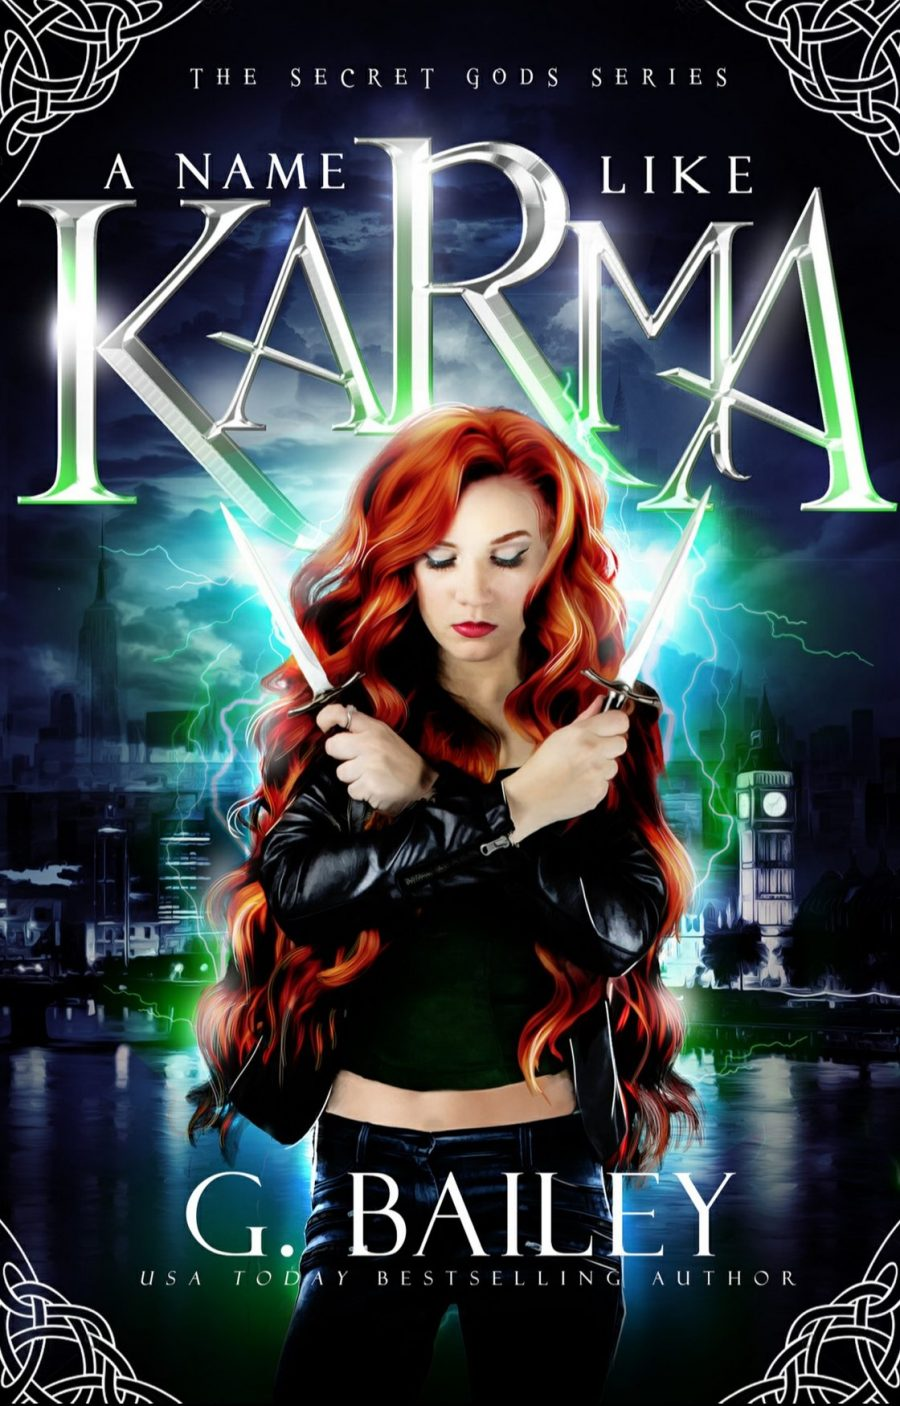 A Name Like Karma by G. Bailey – A Book Review